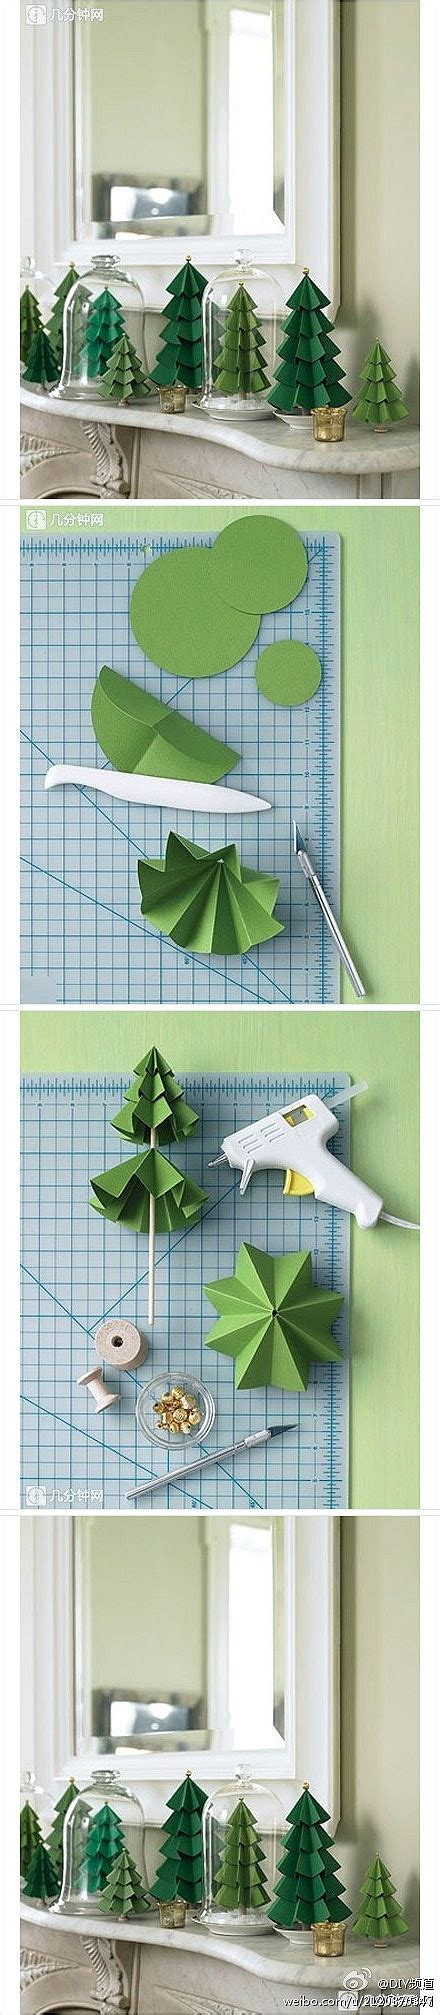 ornament origami violin viola cello diy crafts how to make paper craft christmas trees step by step diy